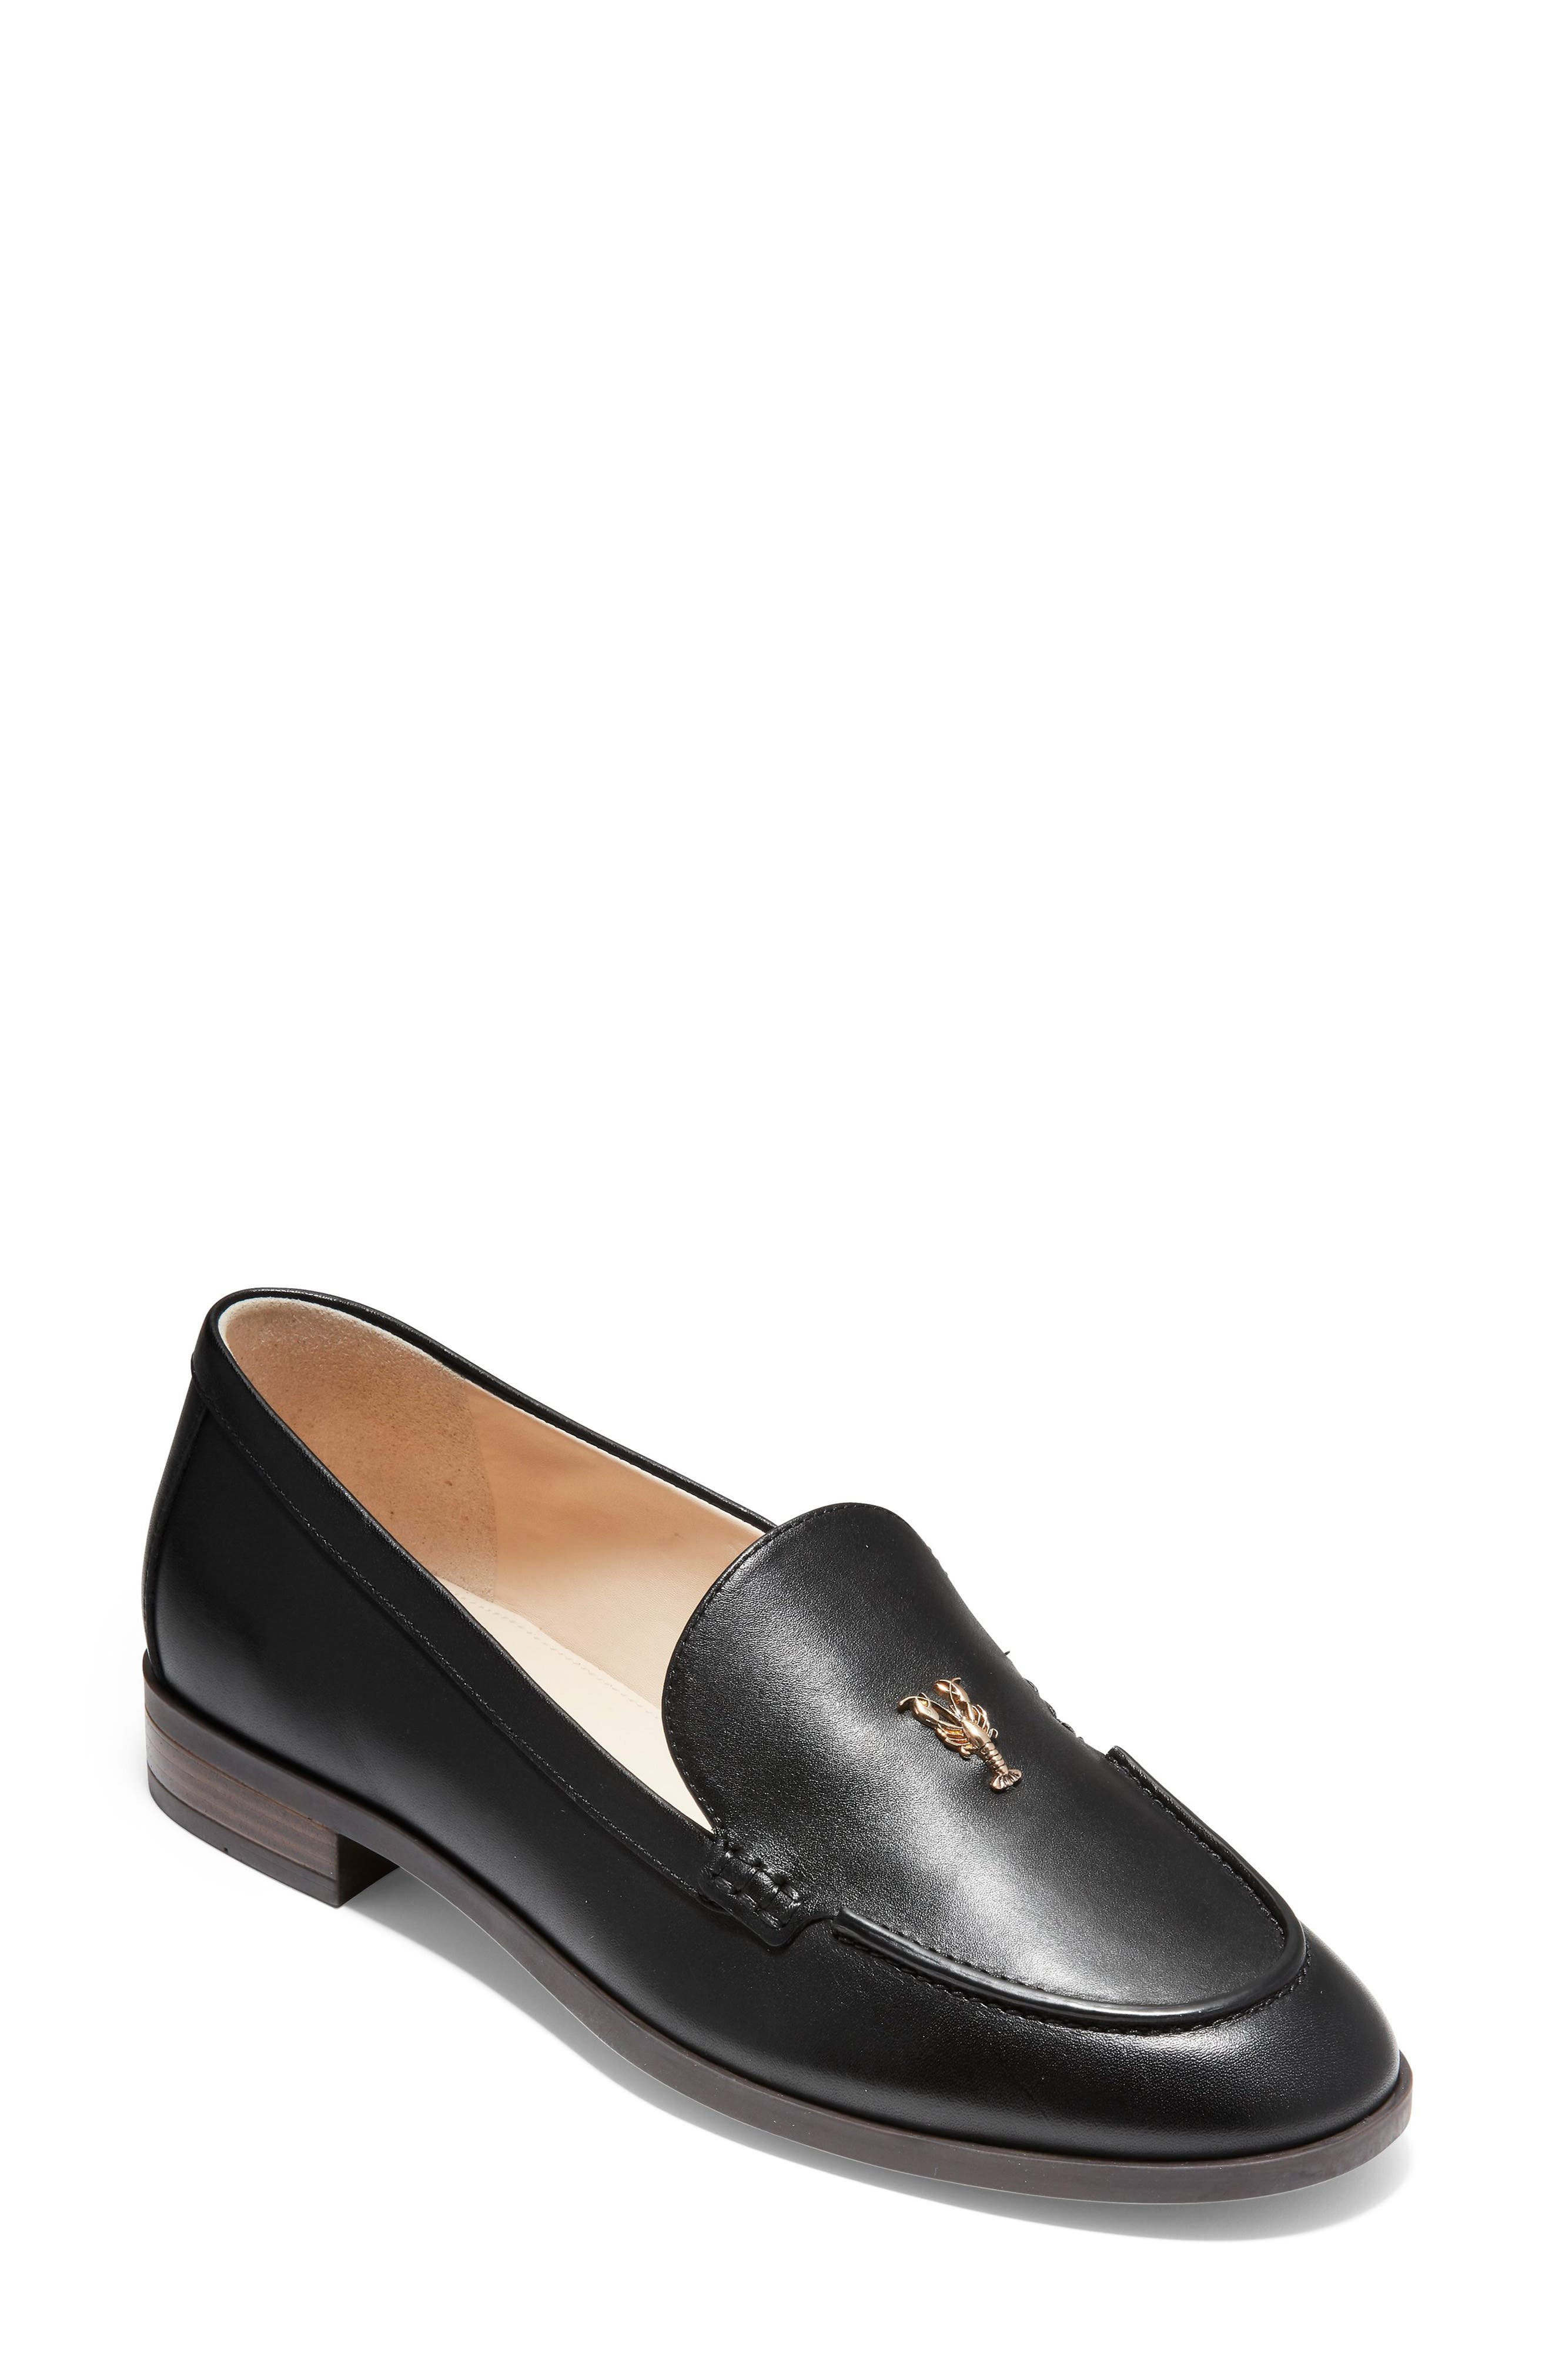 Pinch Lobster Loafer,                             Main thumbnail 1, color,                             BLACK LEATHER